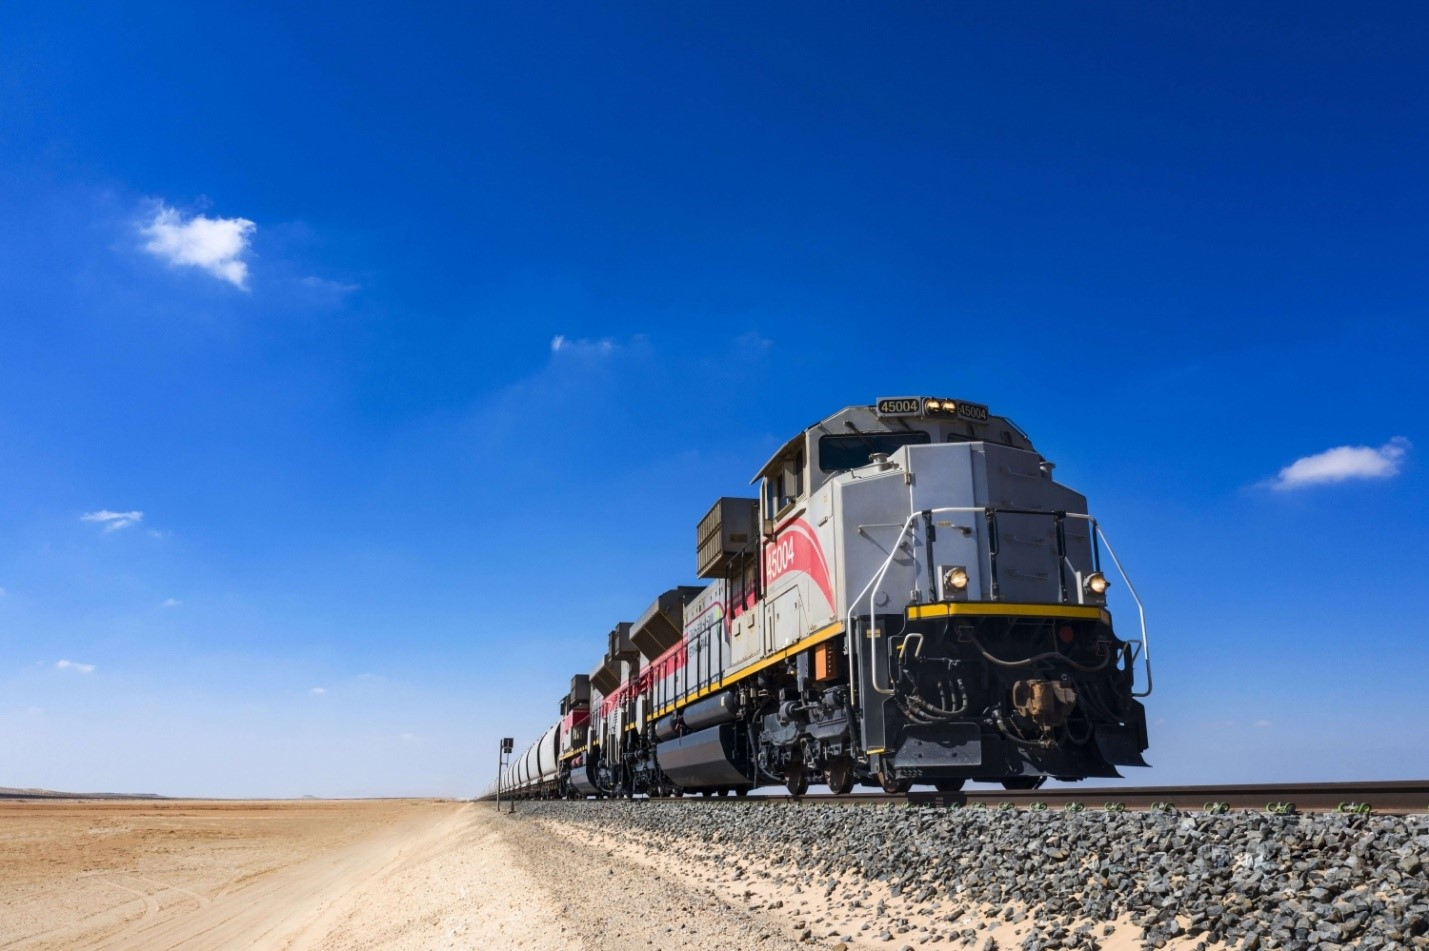 Package A for Stage 2 of Etihad Rail Project Awarded the Best Health and Safety Performance in the Year 2020